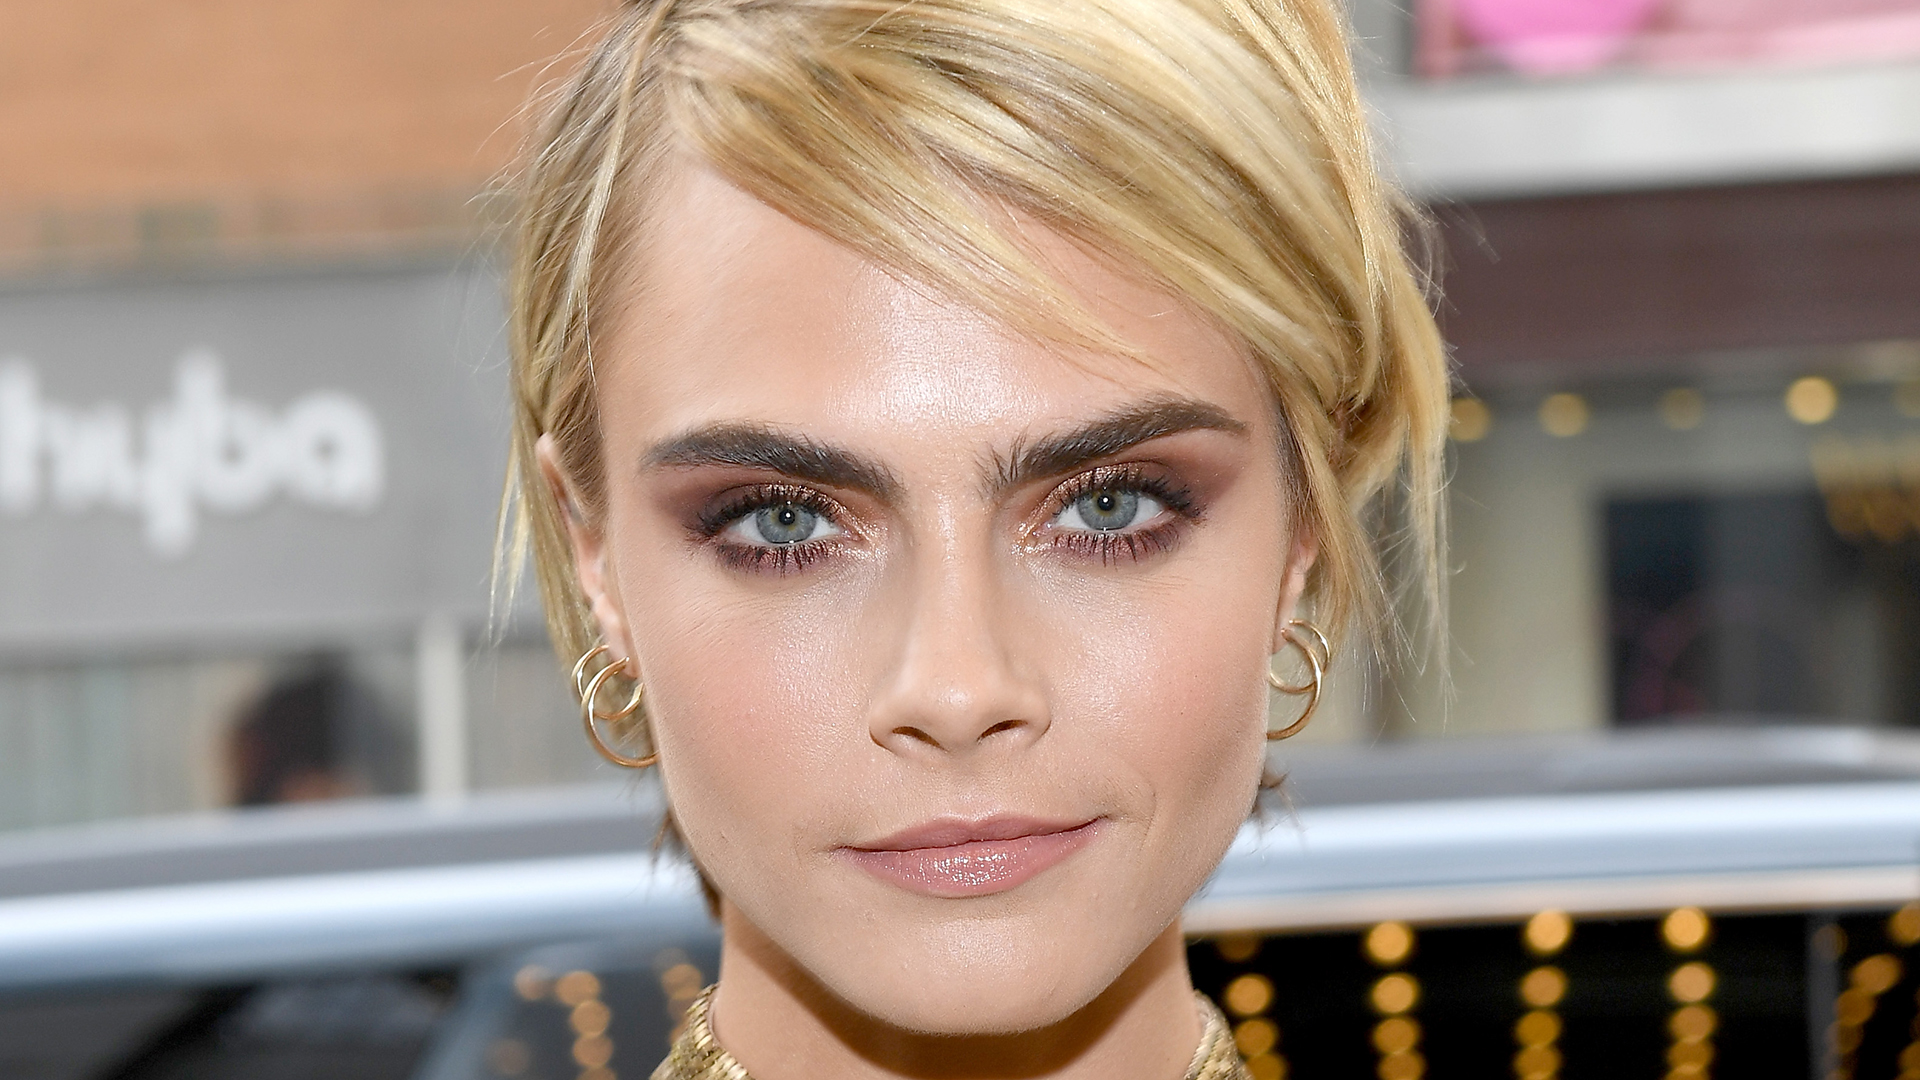 Cara Delevingne Wonderful Eyes Pics - Cara Delevingne Net Worth, Pics, Wallpapers, Career and Biography